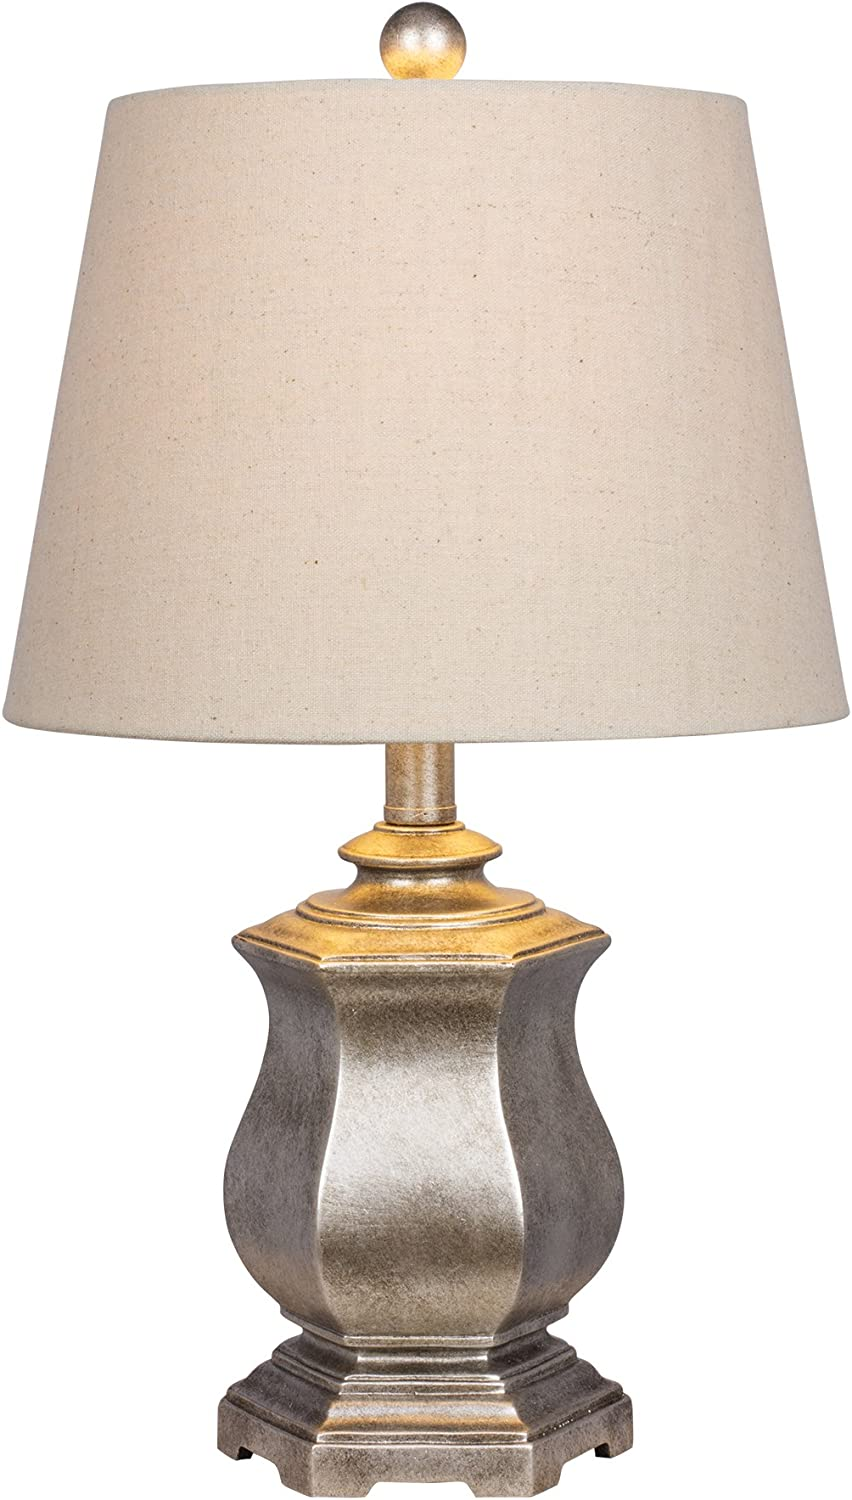 Fangio Lighting W-6215SIL Table Lamp, Silver